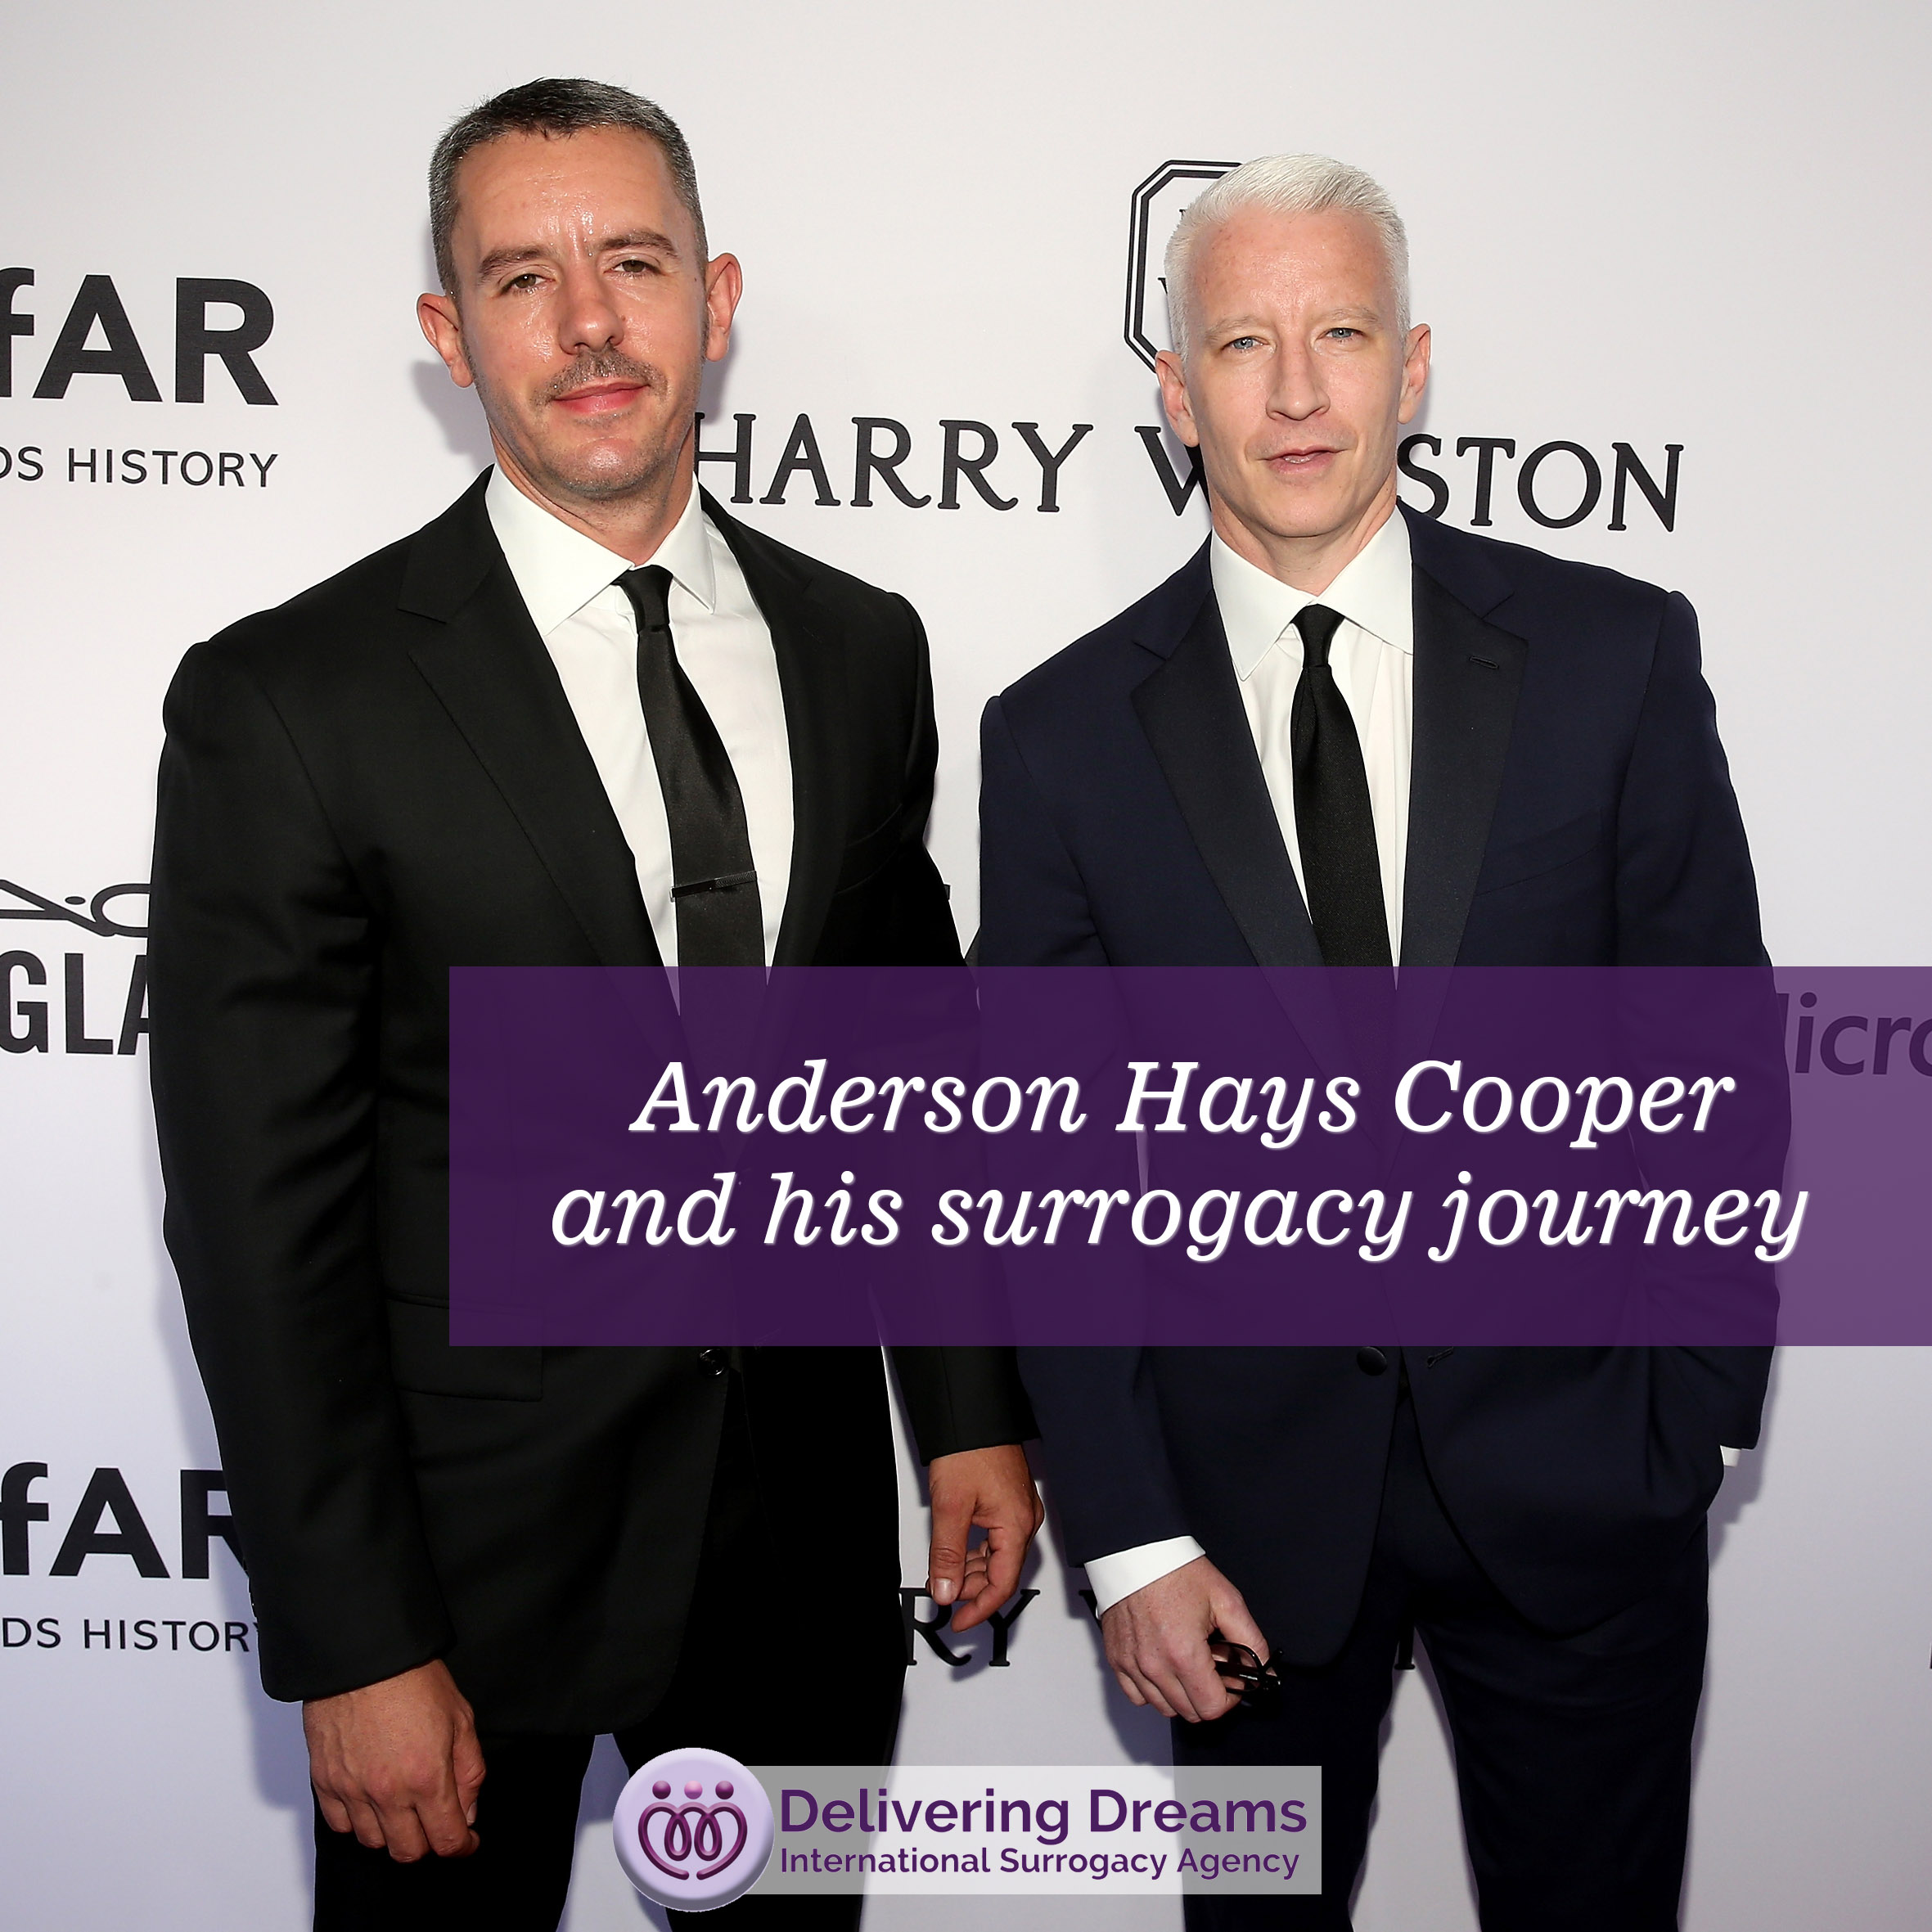 Anderson Hays Cooper and his surrogacy journey